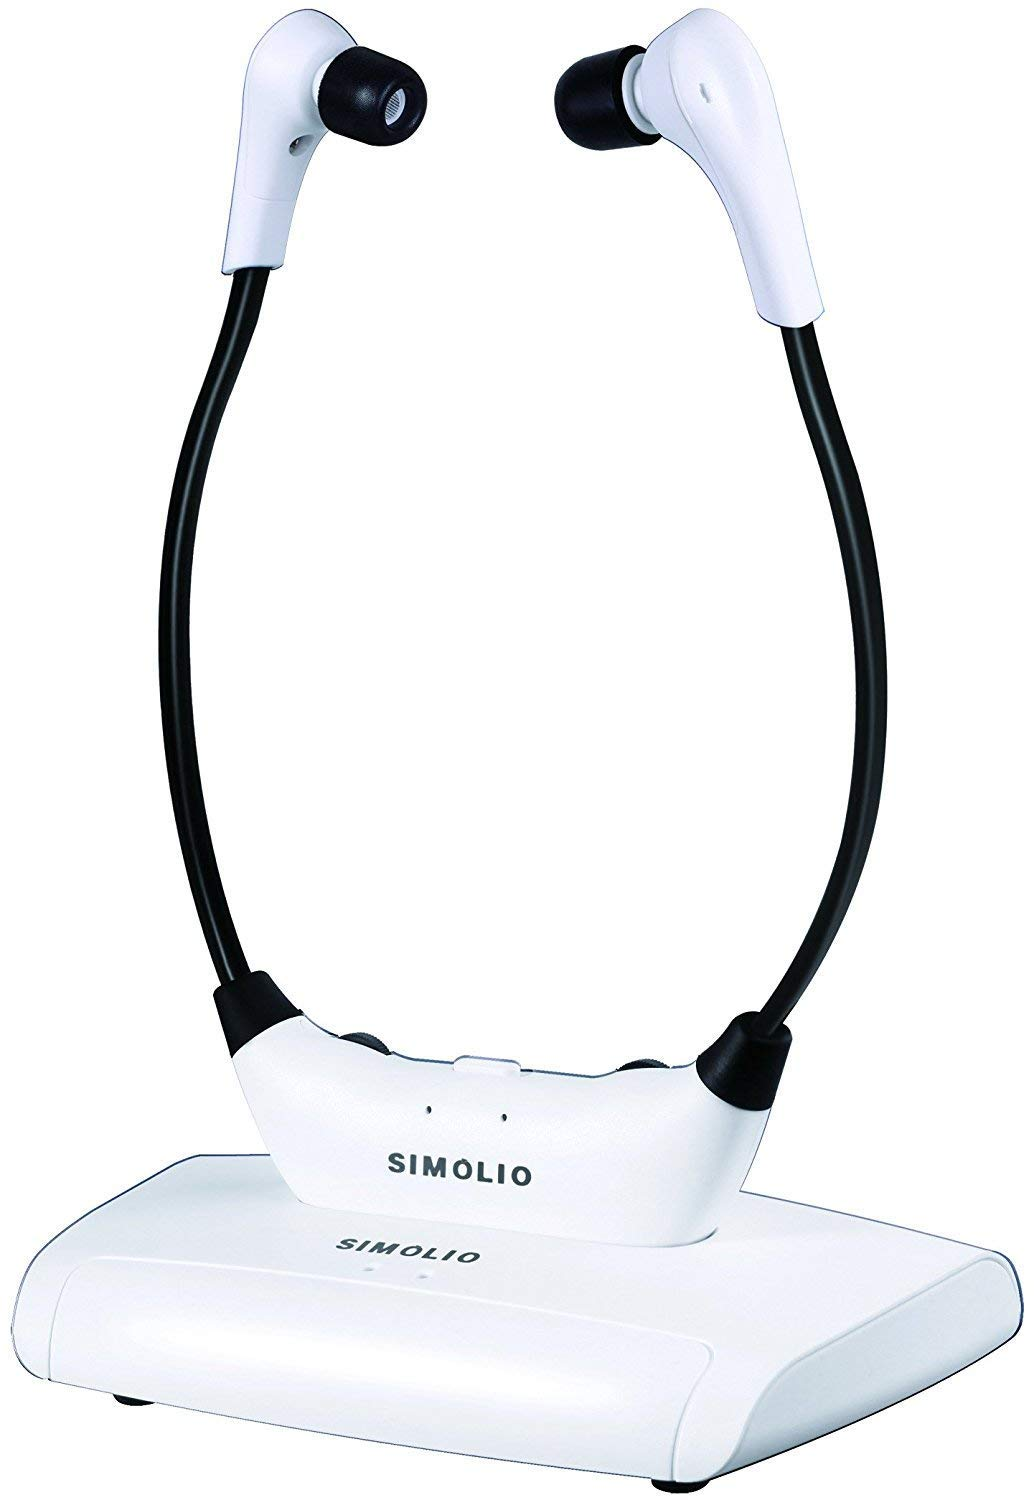 SIMOLIO Wireless TV Headsets, TV Hearing Devices, Hearing Assistance TV Listening Headphones System for Seniors, In Ear Wireless TV Headphone with